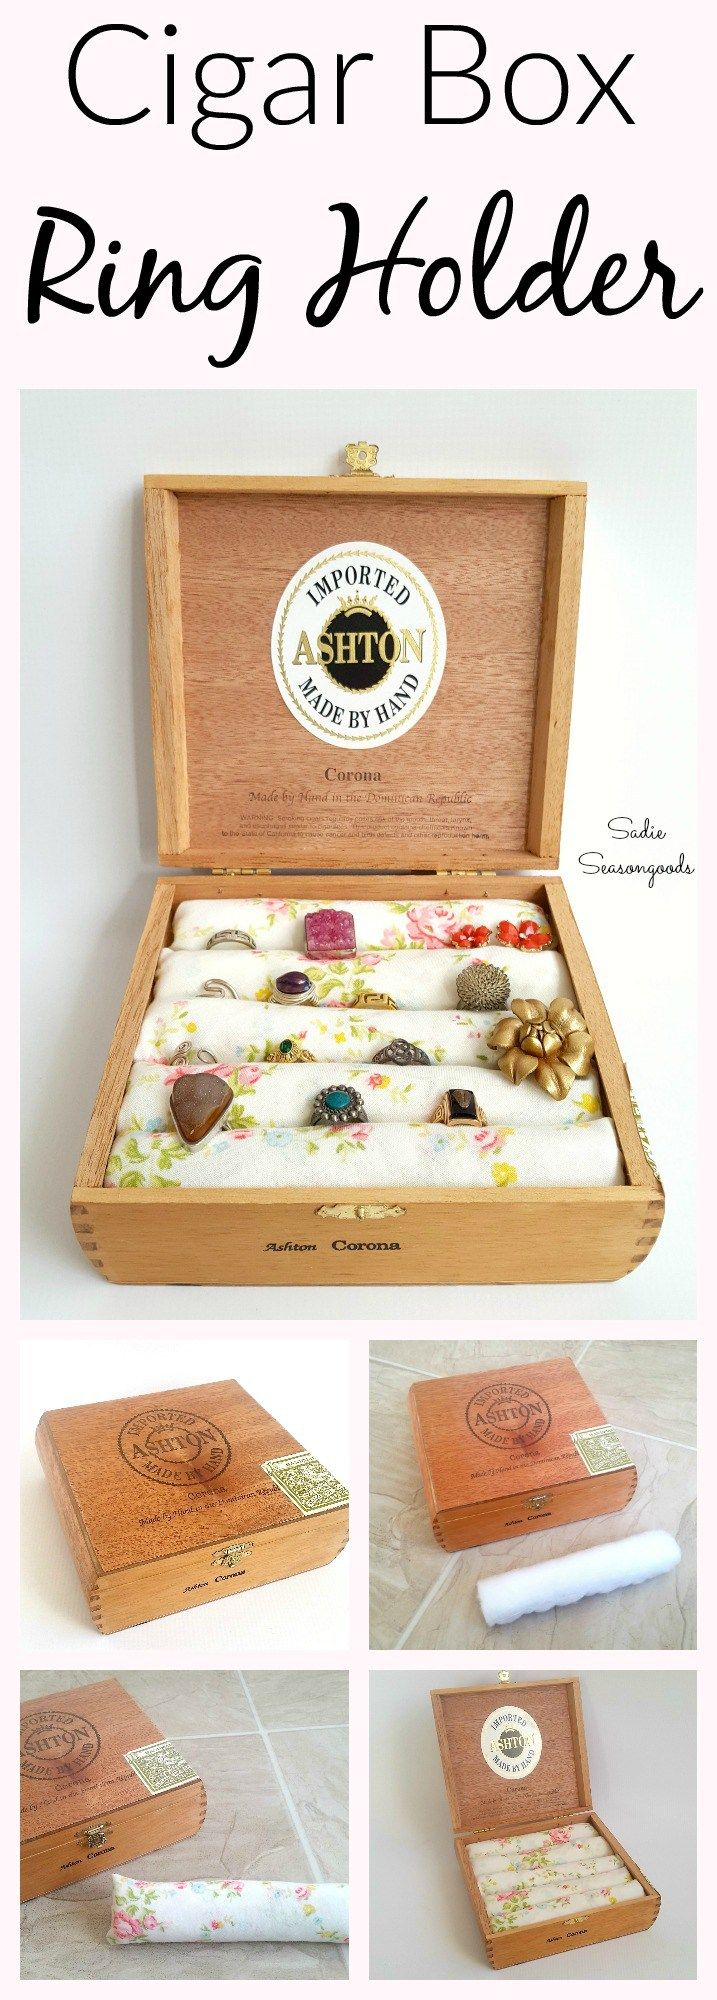 568 best jewelry box redo images on pinterest painted furniture diy ring holder display with a repurposed upcycled vintage cigar box and bed sheet fabric solutioingenieria Choice Image